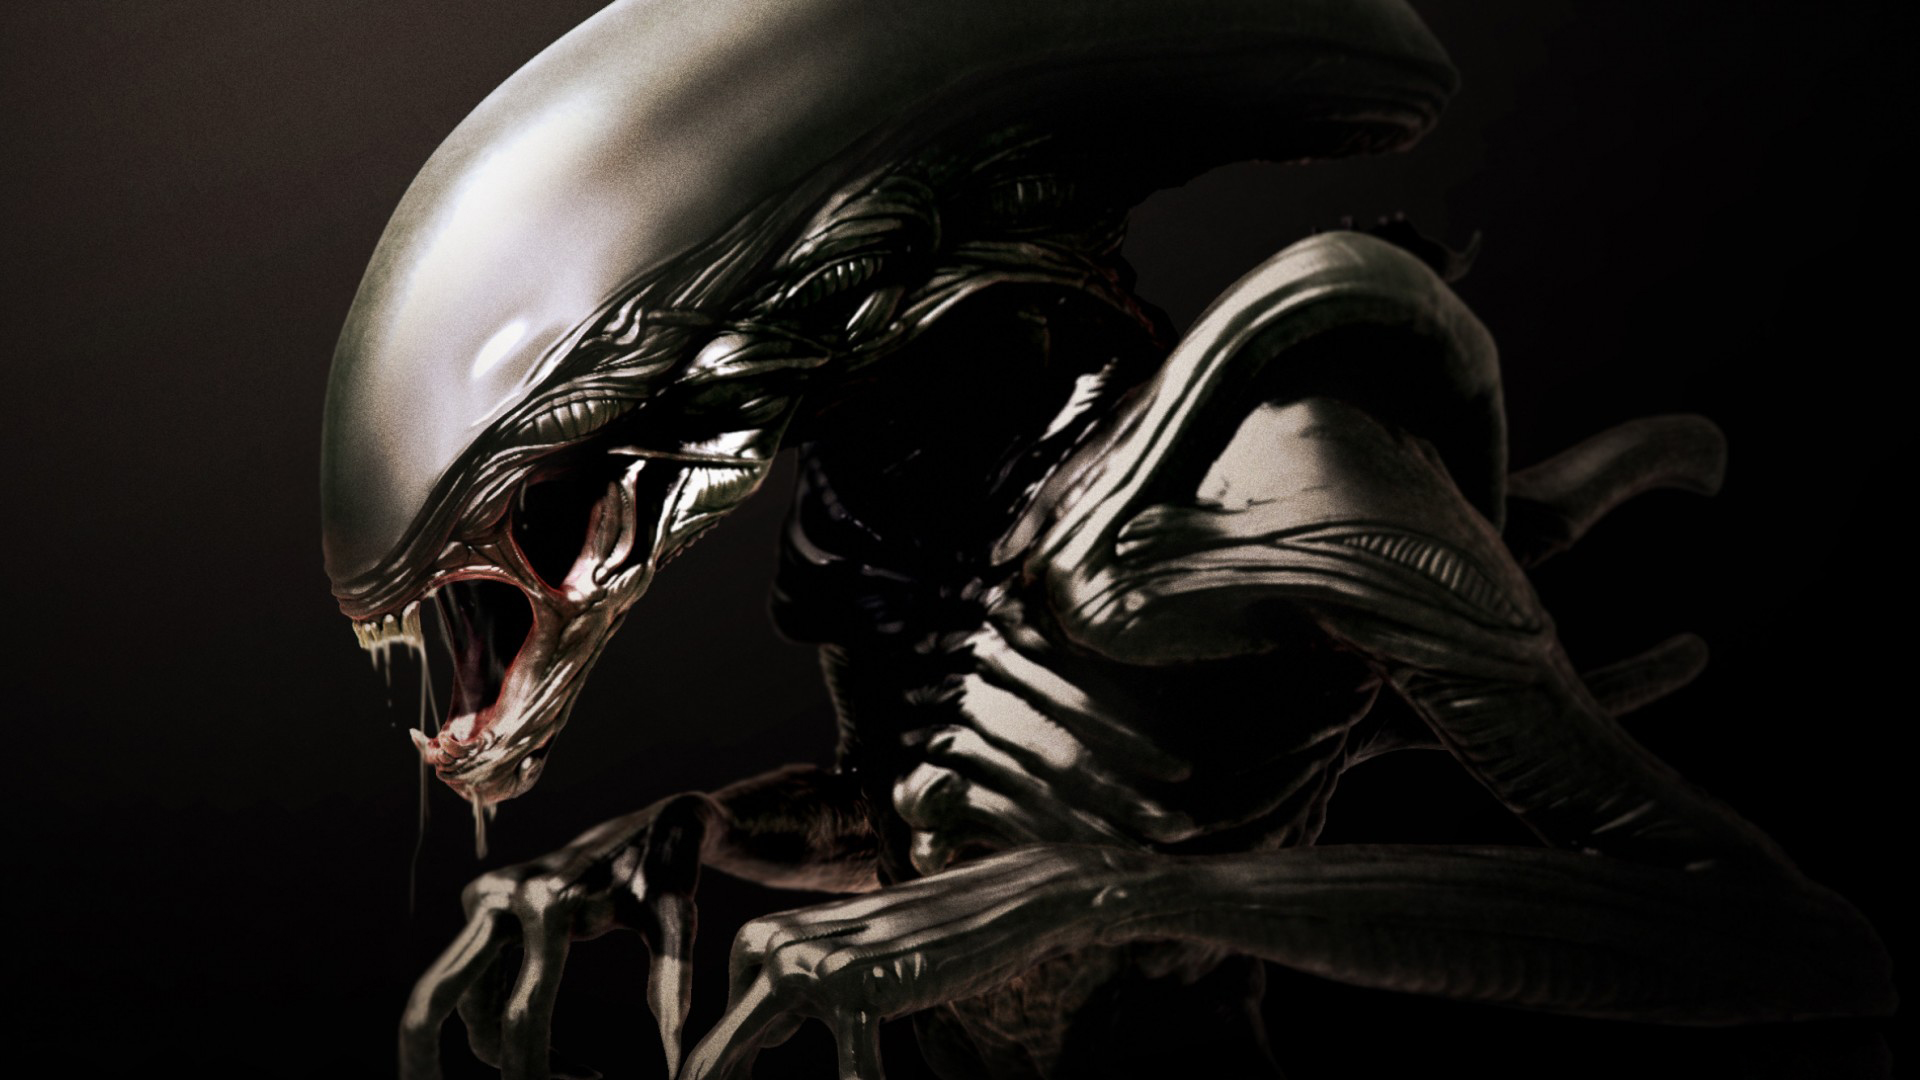 Alien Wallpaper HD 1920x1080